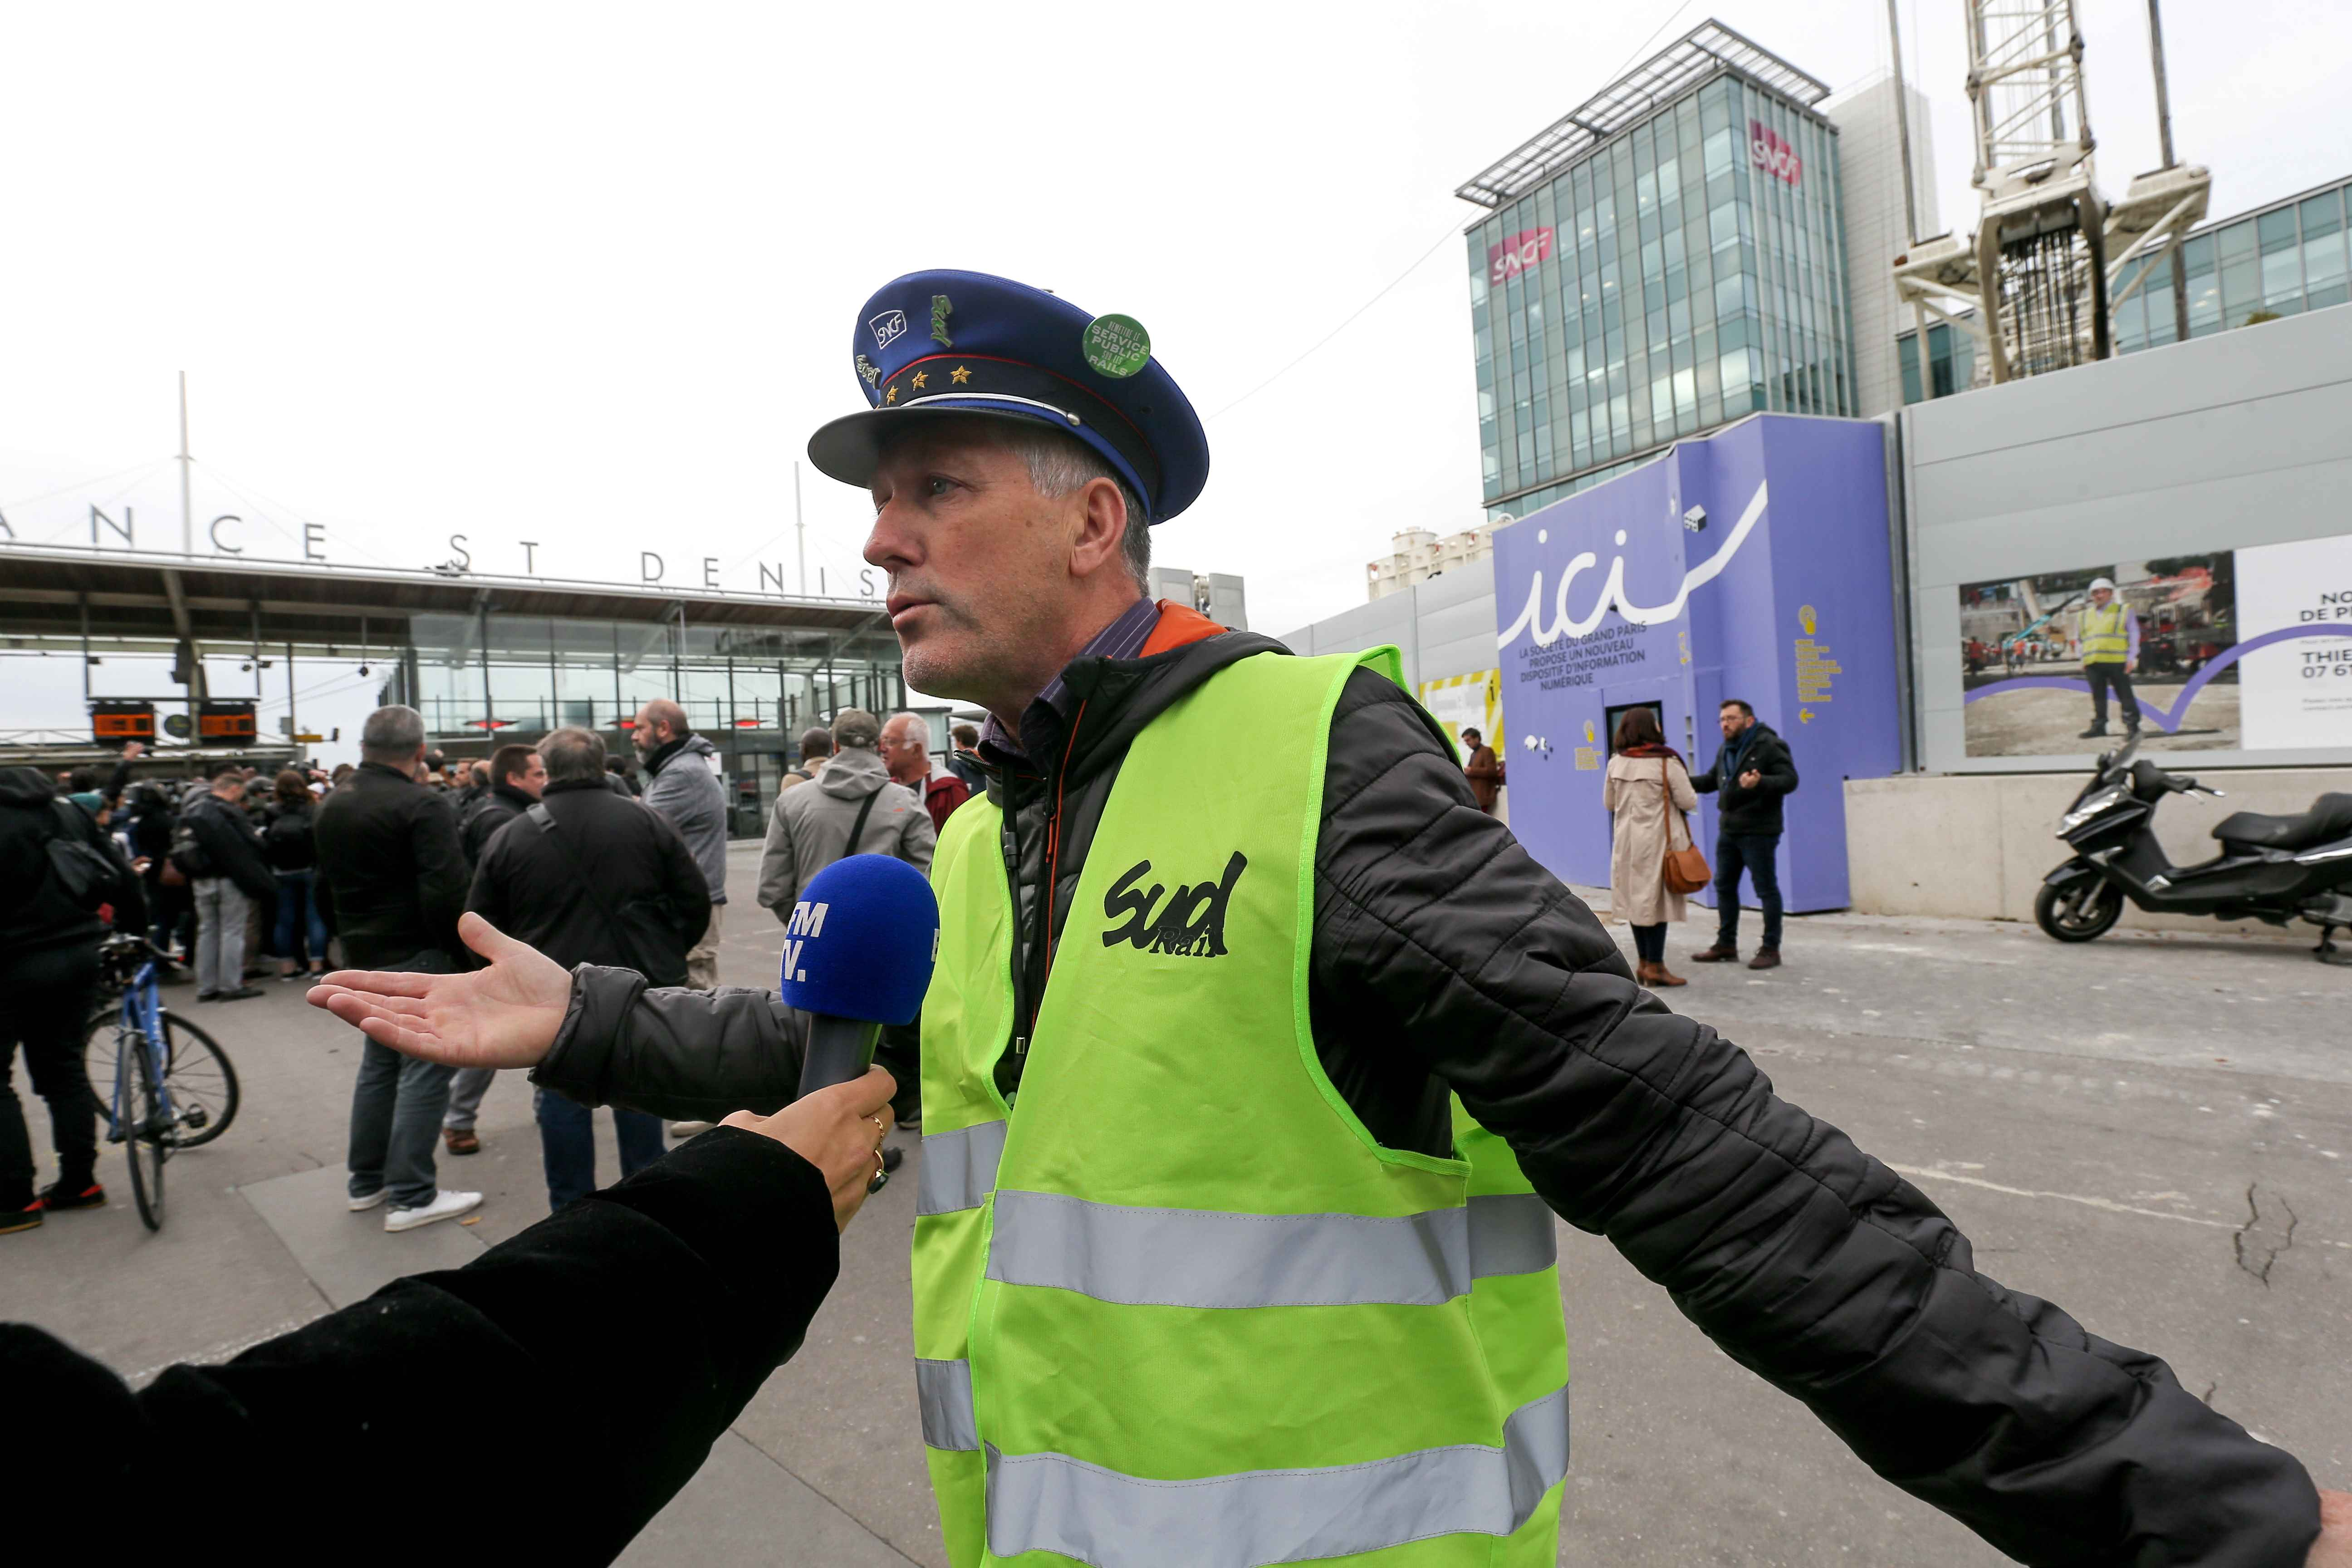 Railway worker wearing jacket of France's national state-owned railway company (SNCF) from the Chatillon TGV Technicentre speaks with press as he protests in front of the headquarters of the SNCF company, in Saint-Denis, near Paris, on October 29, 2019. Or